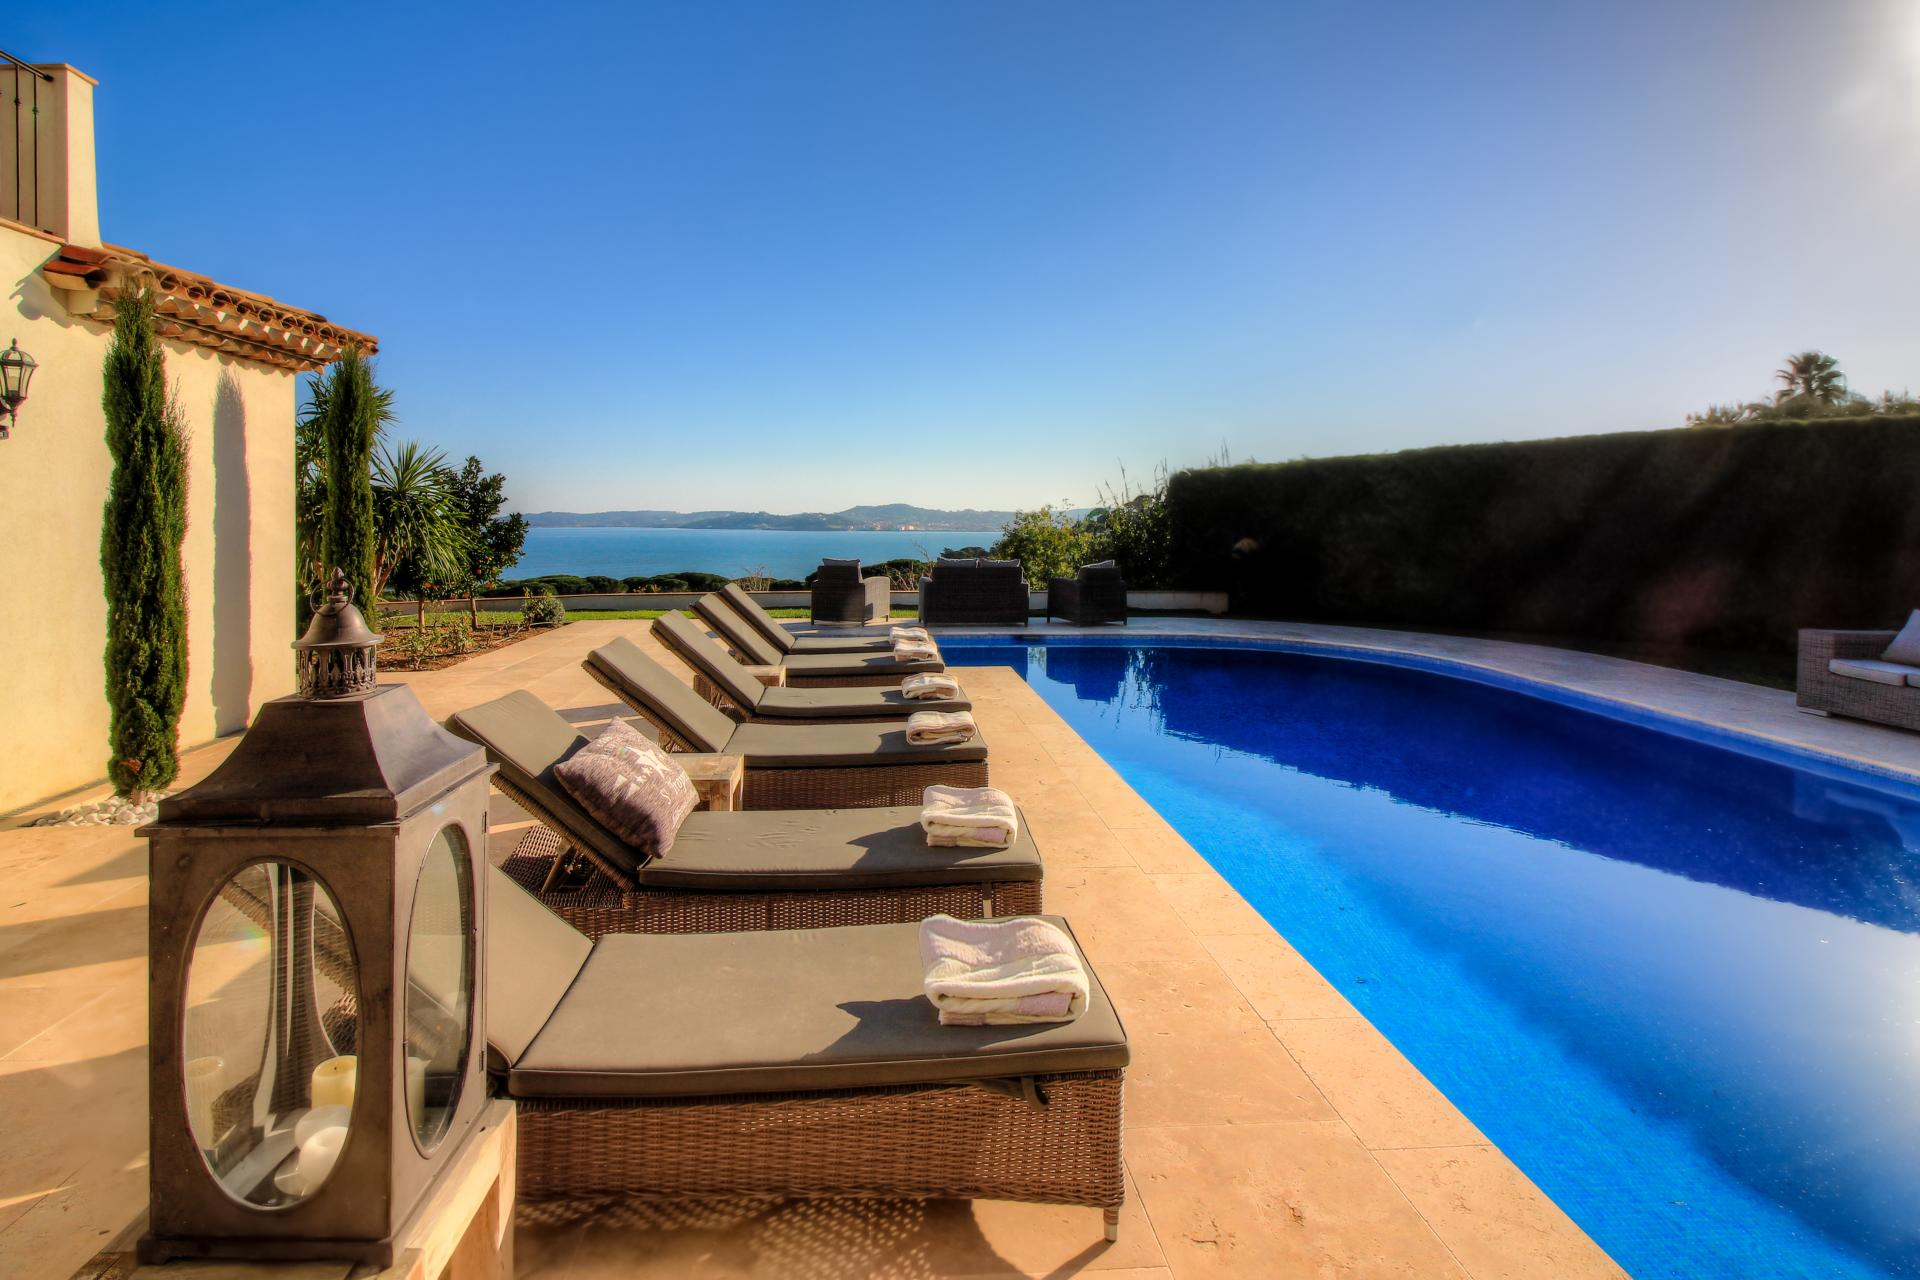 Relax by the pool with sea view